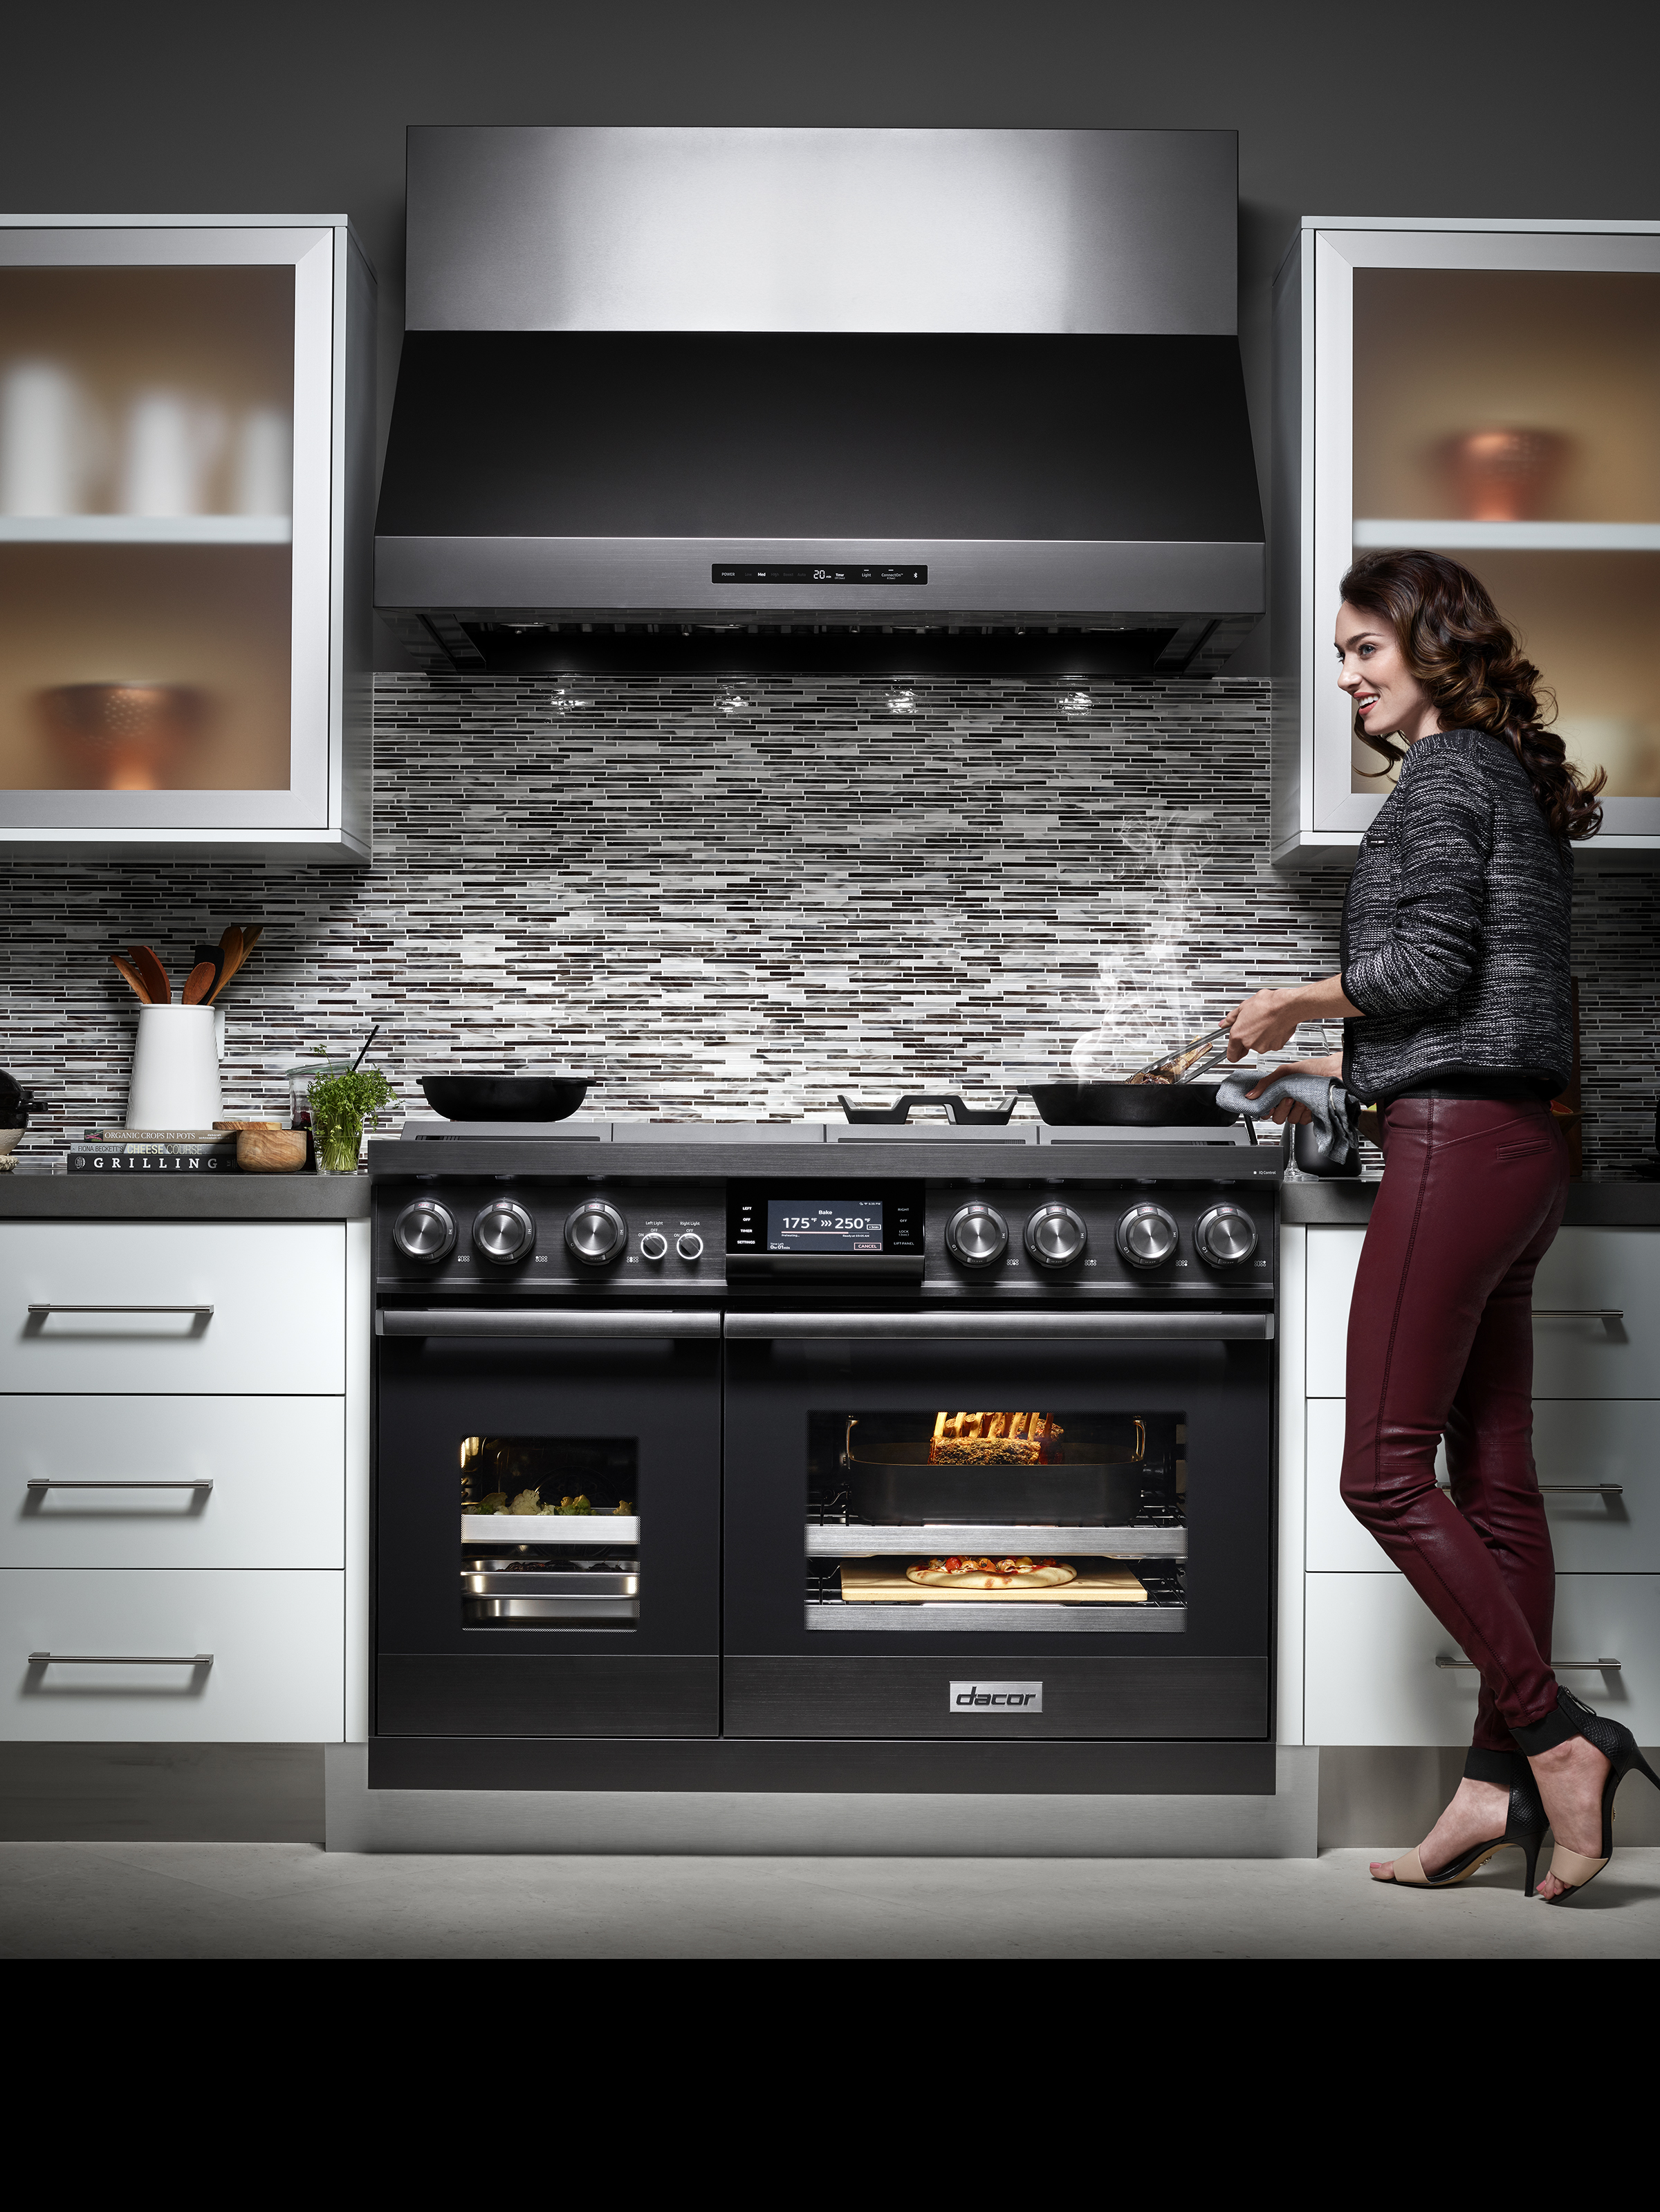 Dacor Introduces The Modernist Collection of Luxury Appliances